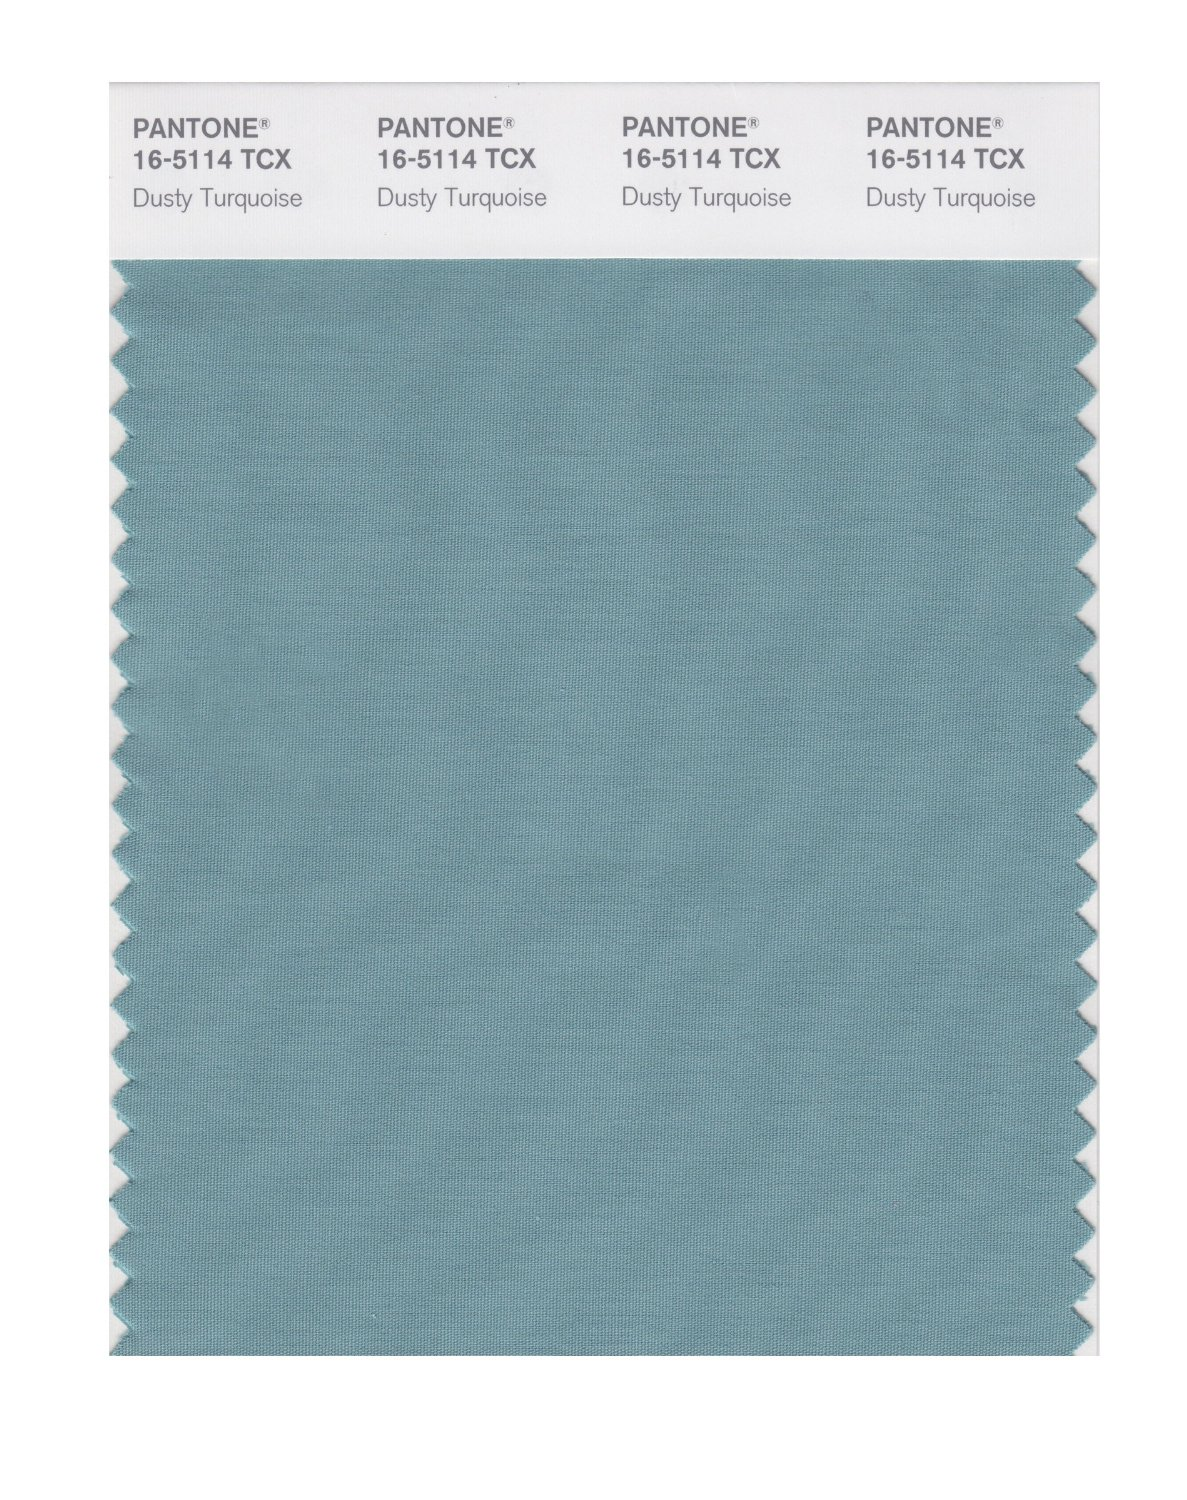 Pantone Smart Swatch 16-5114 Dusty Turquoise